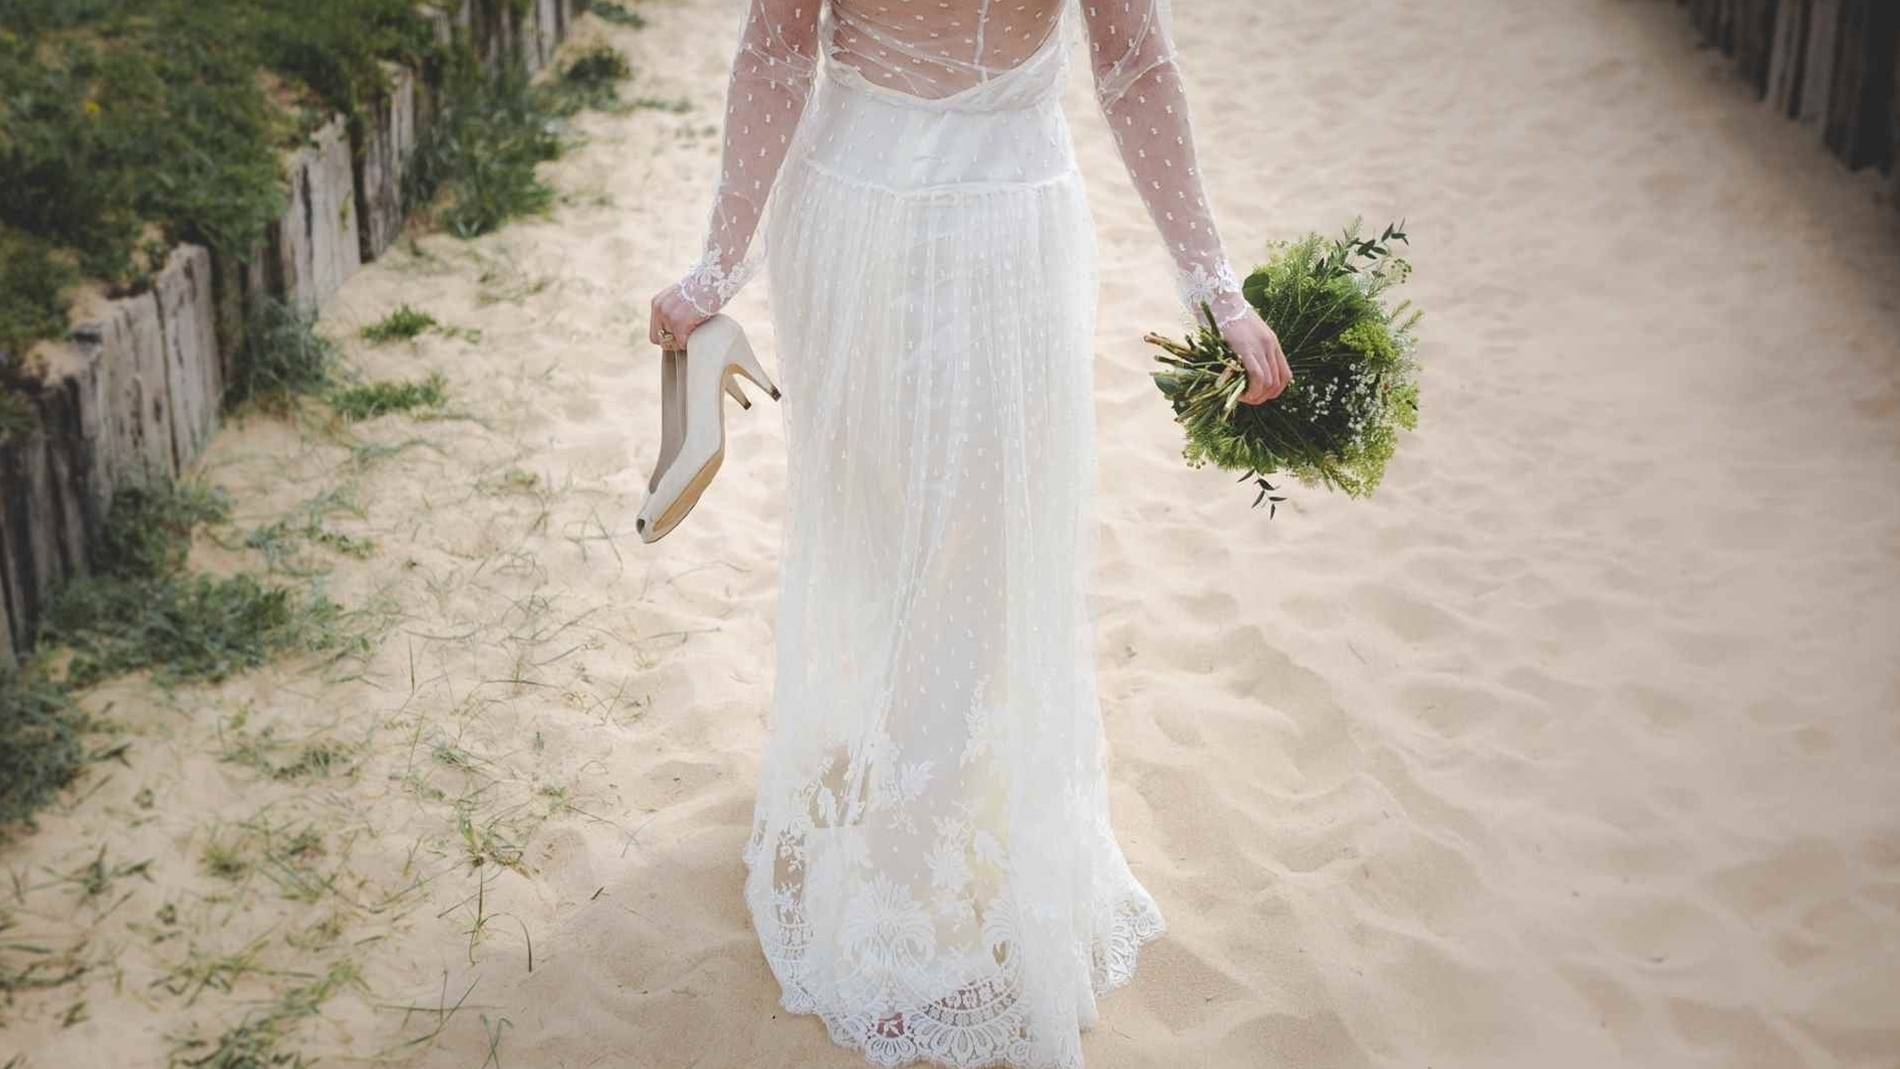 Choose beach wedding shoes carefully